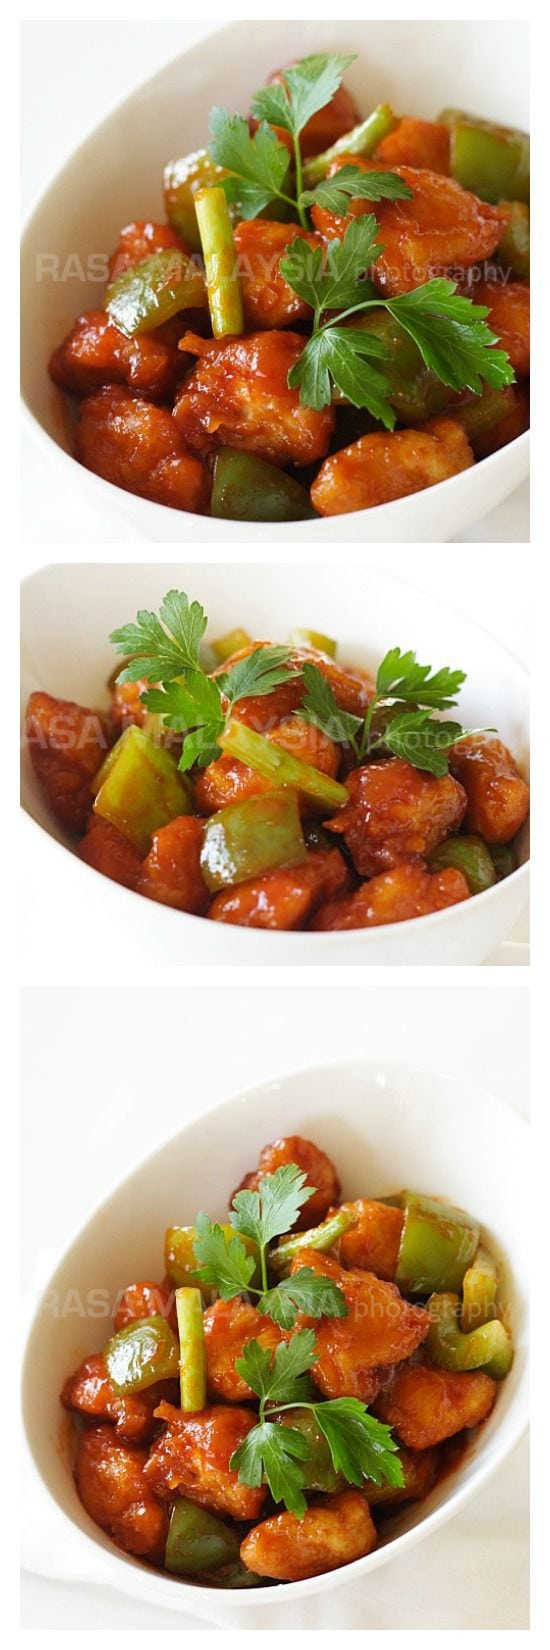 Sweet and Sour Chicken Recipe. The best and easiest sweet and sour chicken recipe that anyone can make at home. Much healthier and better than takeout | rasamalaysia.com